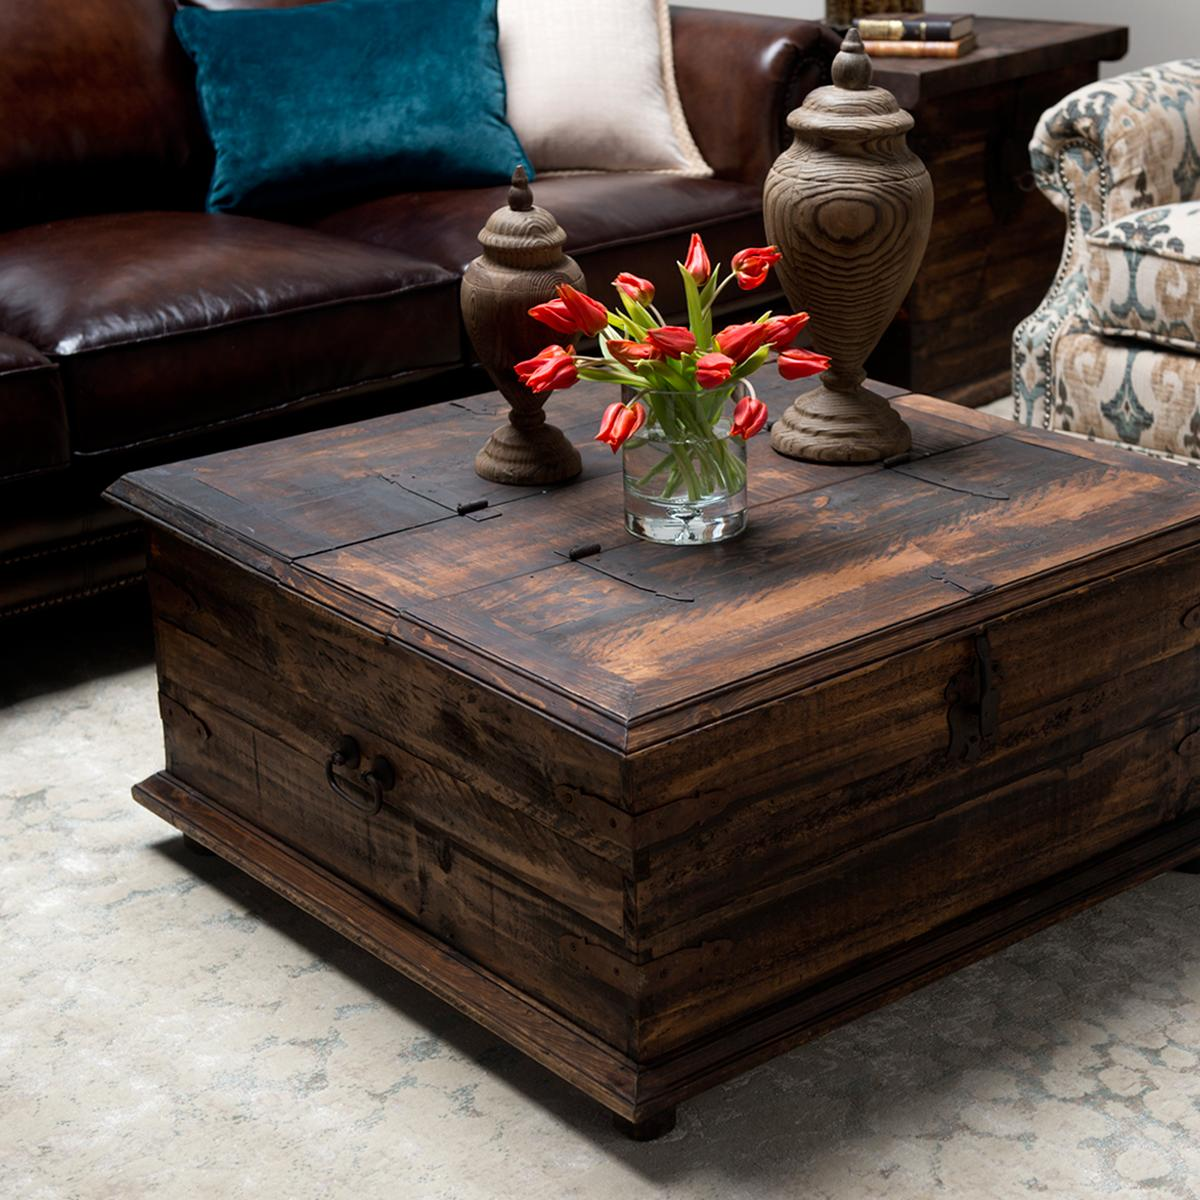 trunk coffee table ... 2800907702_05013-00023-coffee-table-trunk153s.jpg ... BCBWGCQ